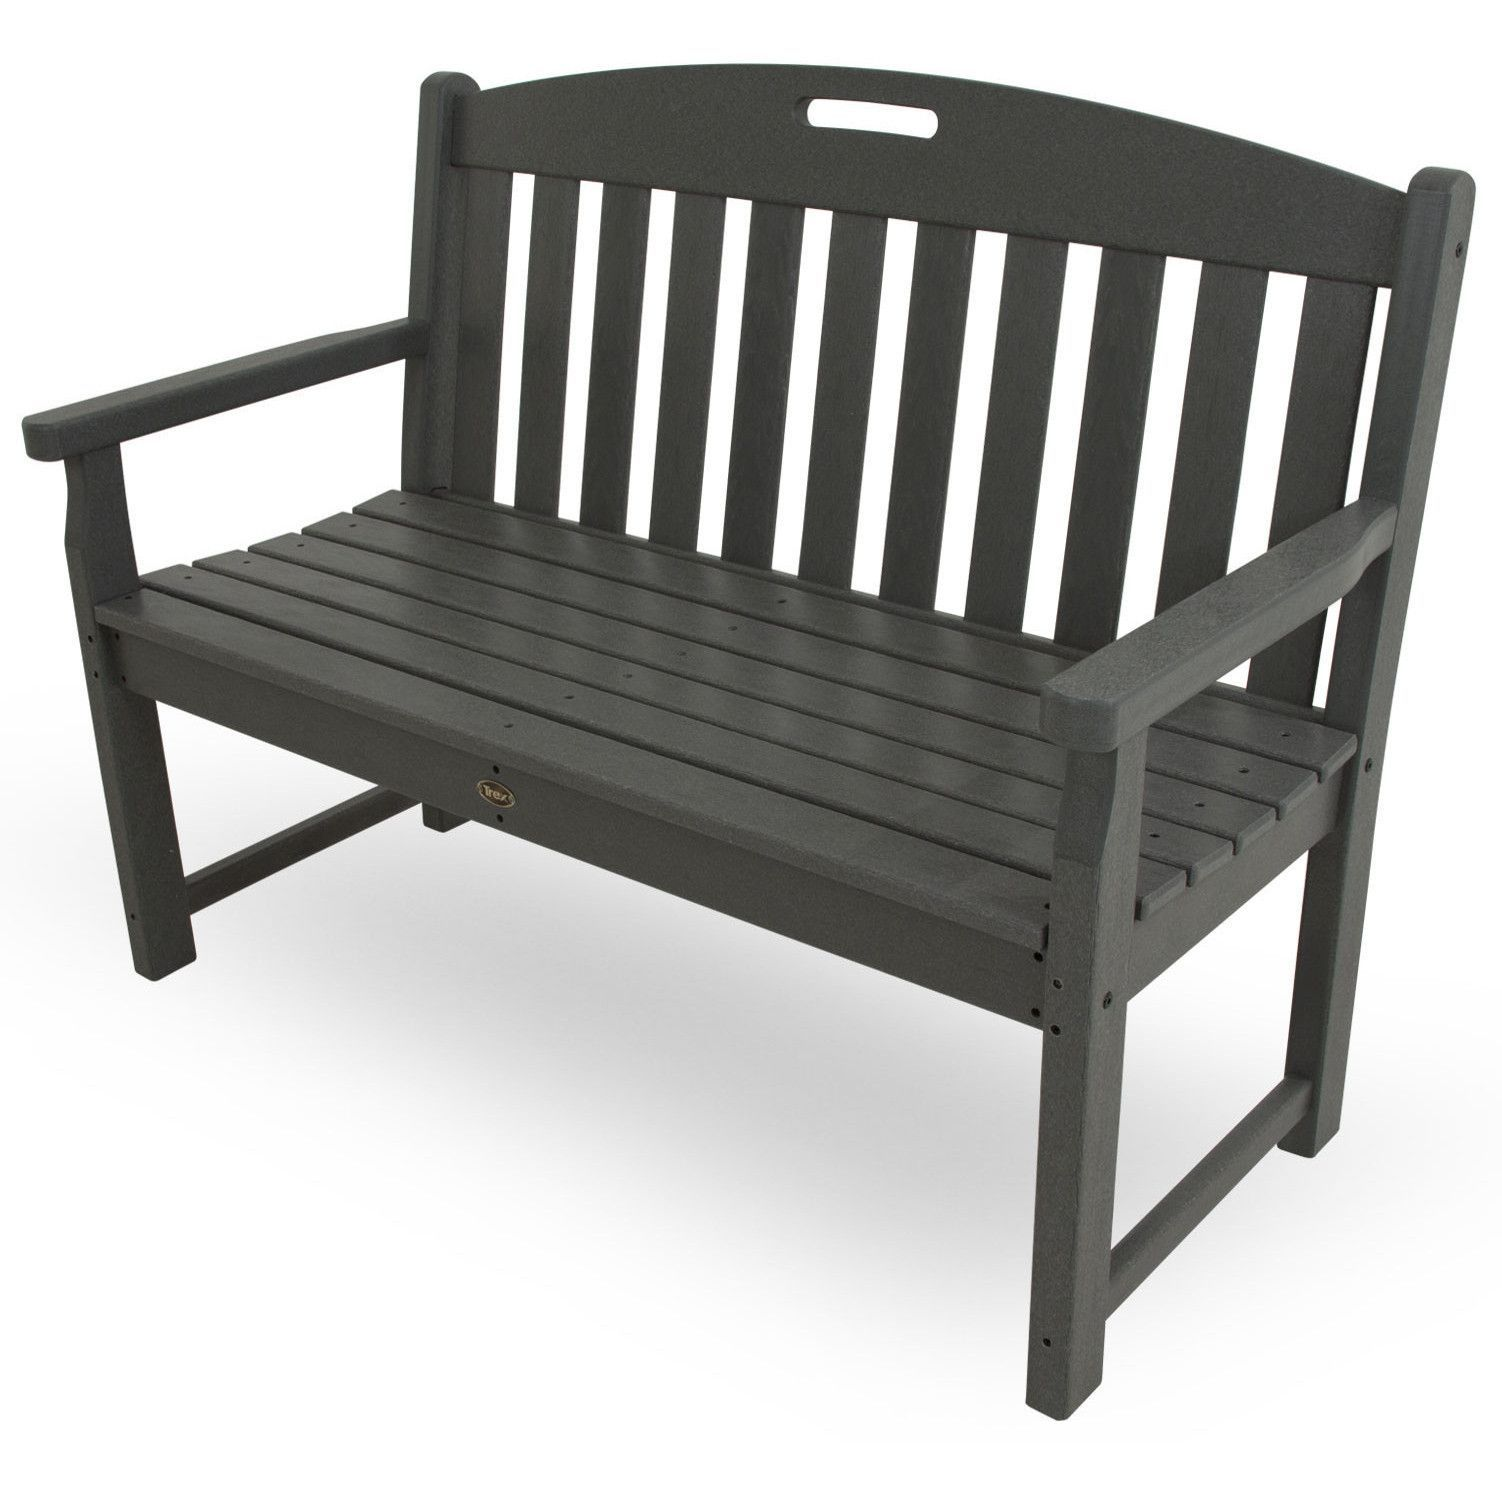 Trex outdoor furniture yacht club 48 bench